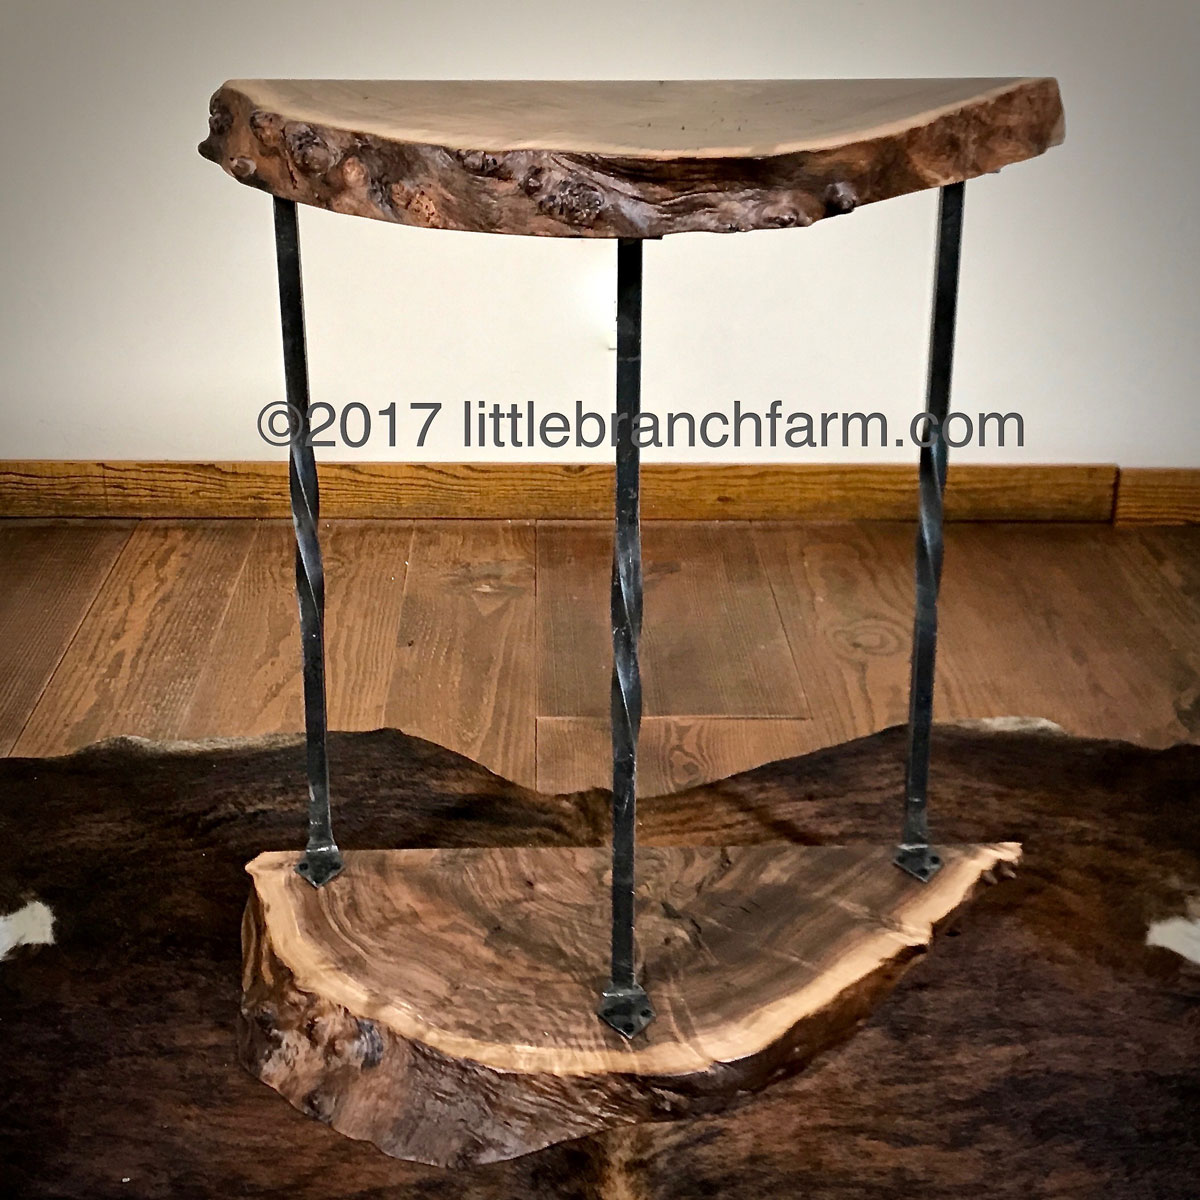 live edge wood accent table littlebranch farm forged iron end tables slab rustic bedside blue buffalo dog treats footlocker storage trunk steel pipe legs screw chair fabric crate